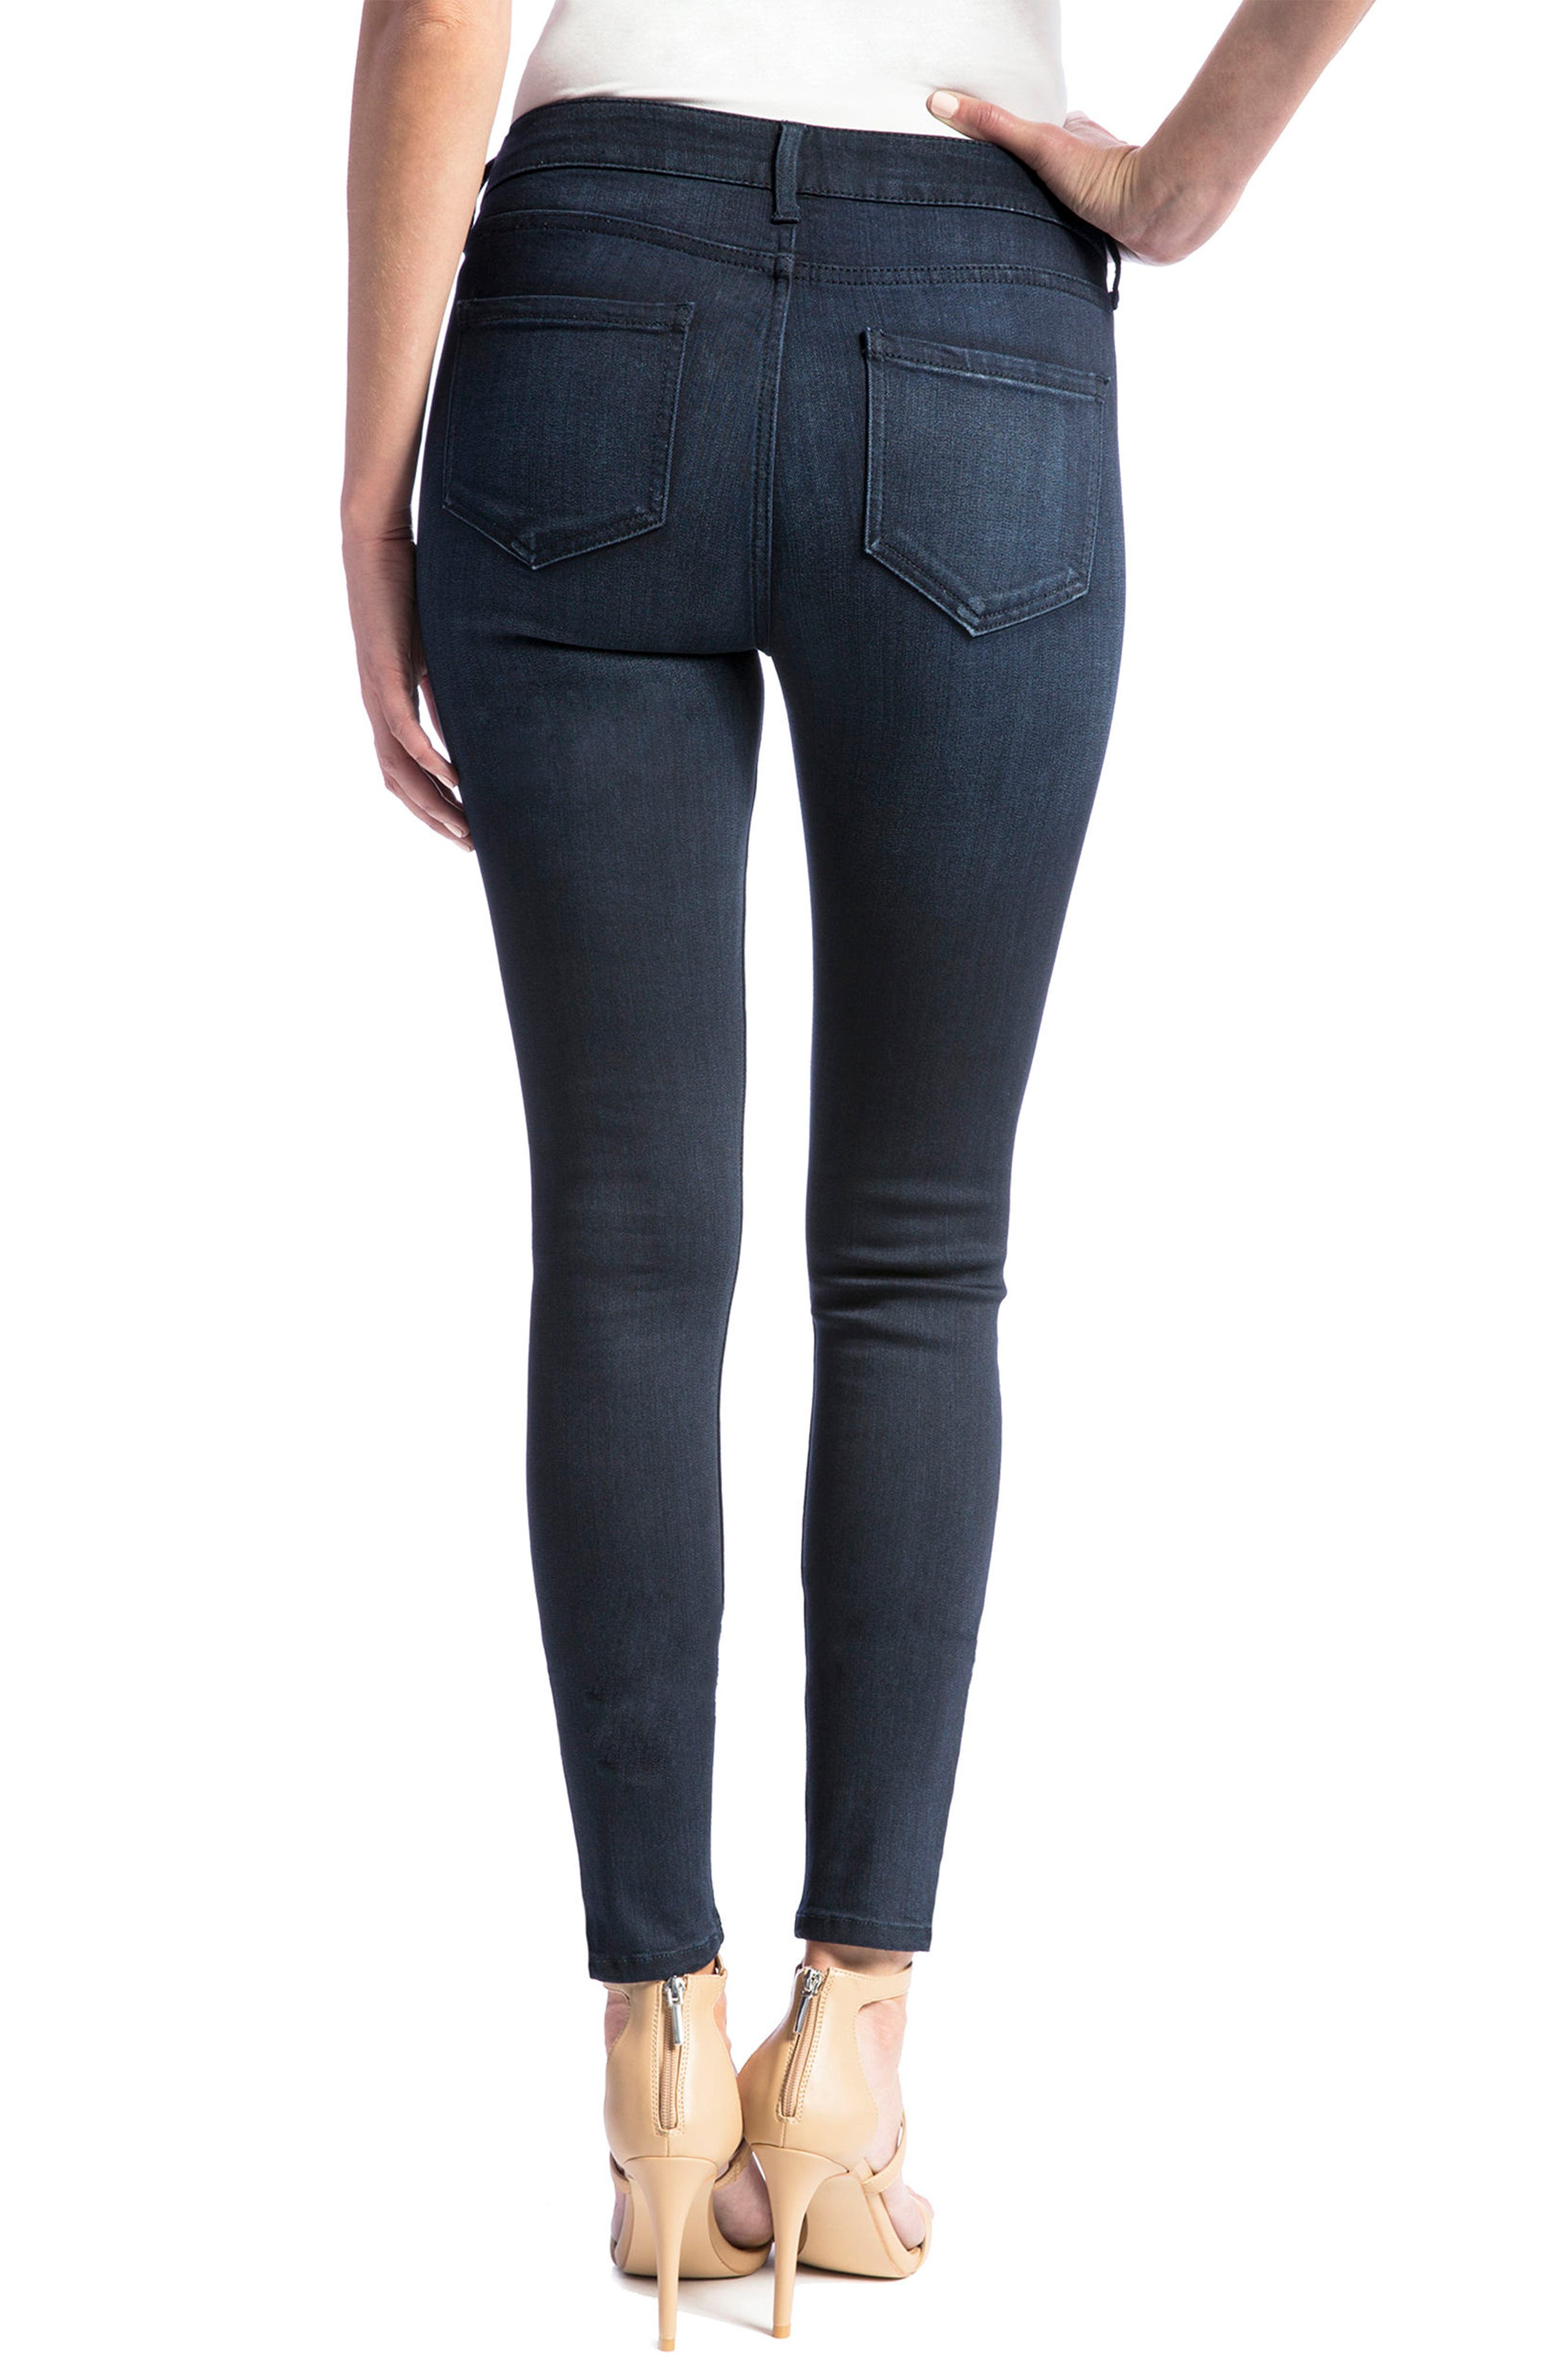 Jeans Co. Abby Stretch Skinny Jeans,                             Alternate thumbnail 2, color,                             402